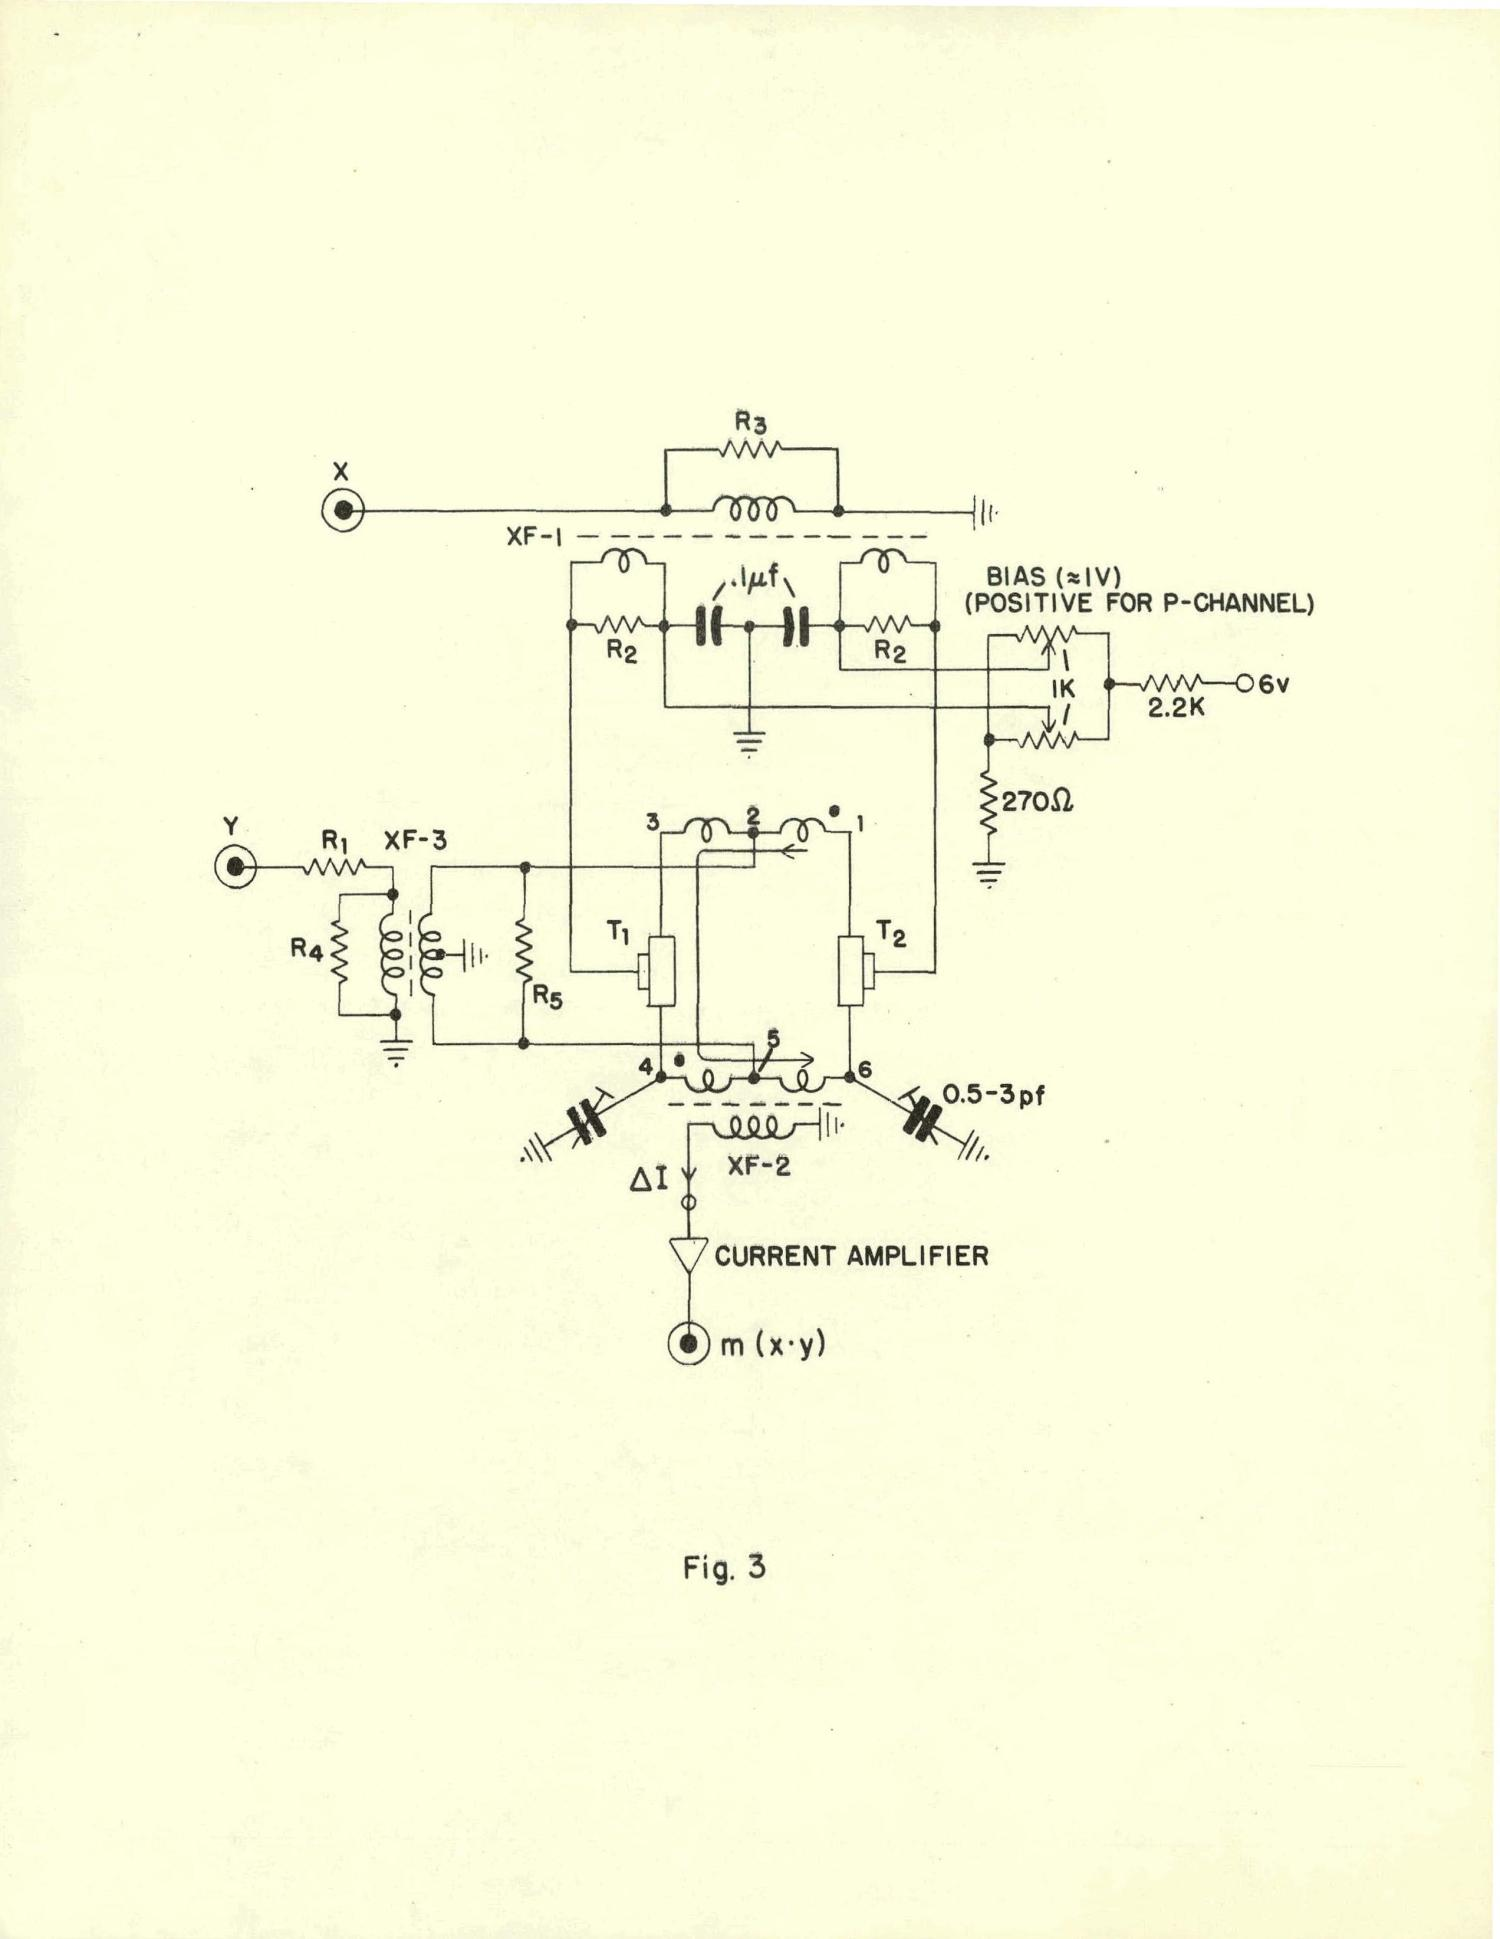 FAST ANALOGUE MULTIPLIERS WITH FIELD-EFFECT TRANSISTORS                                                                                                      [Sequence #]: 12 of 14